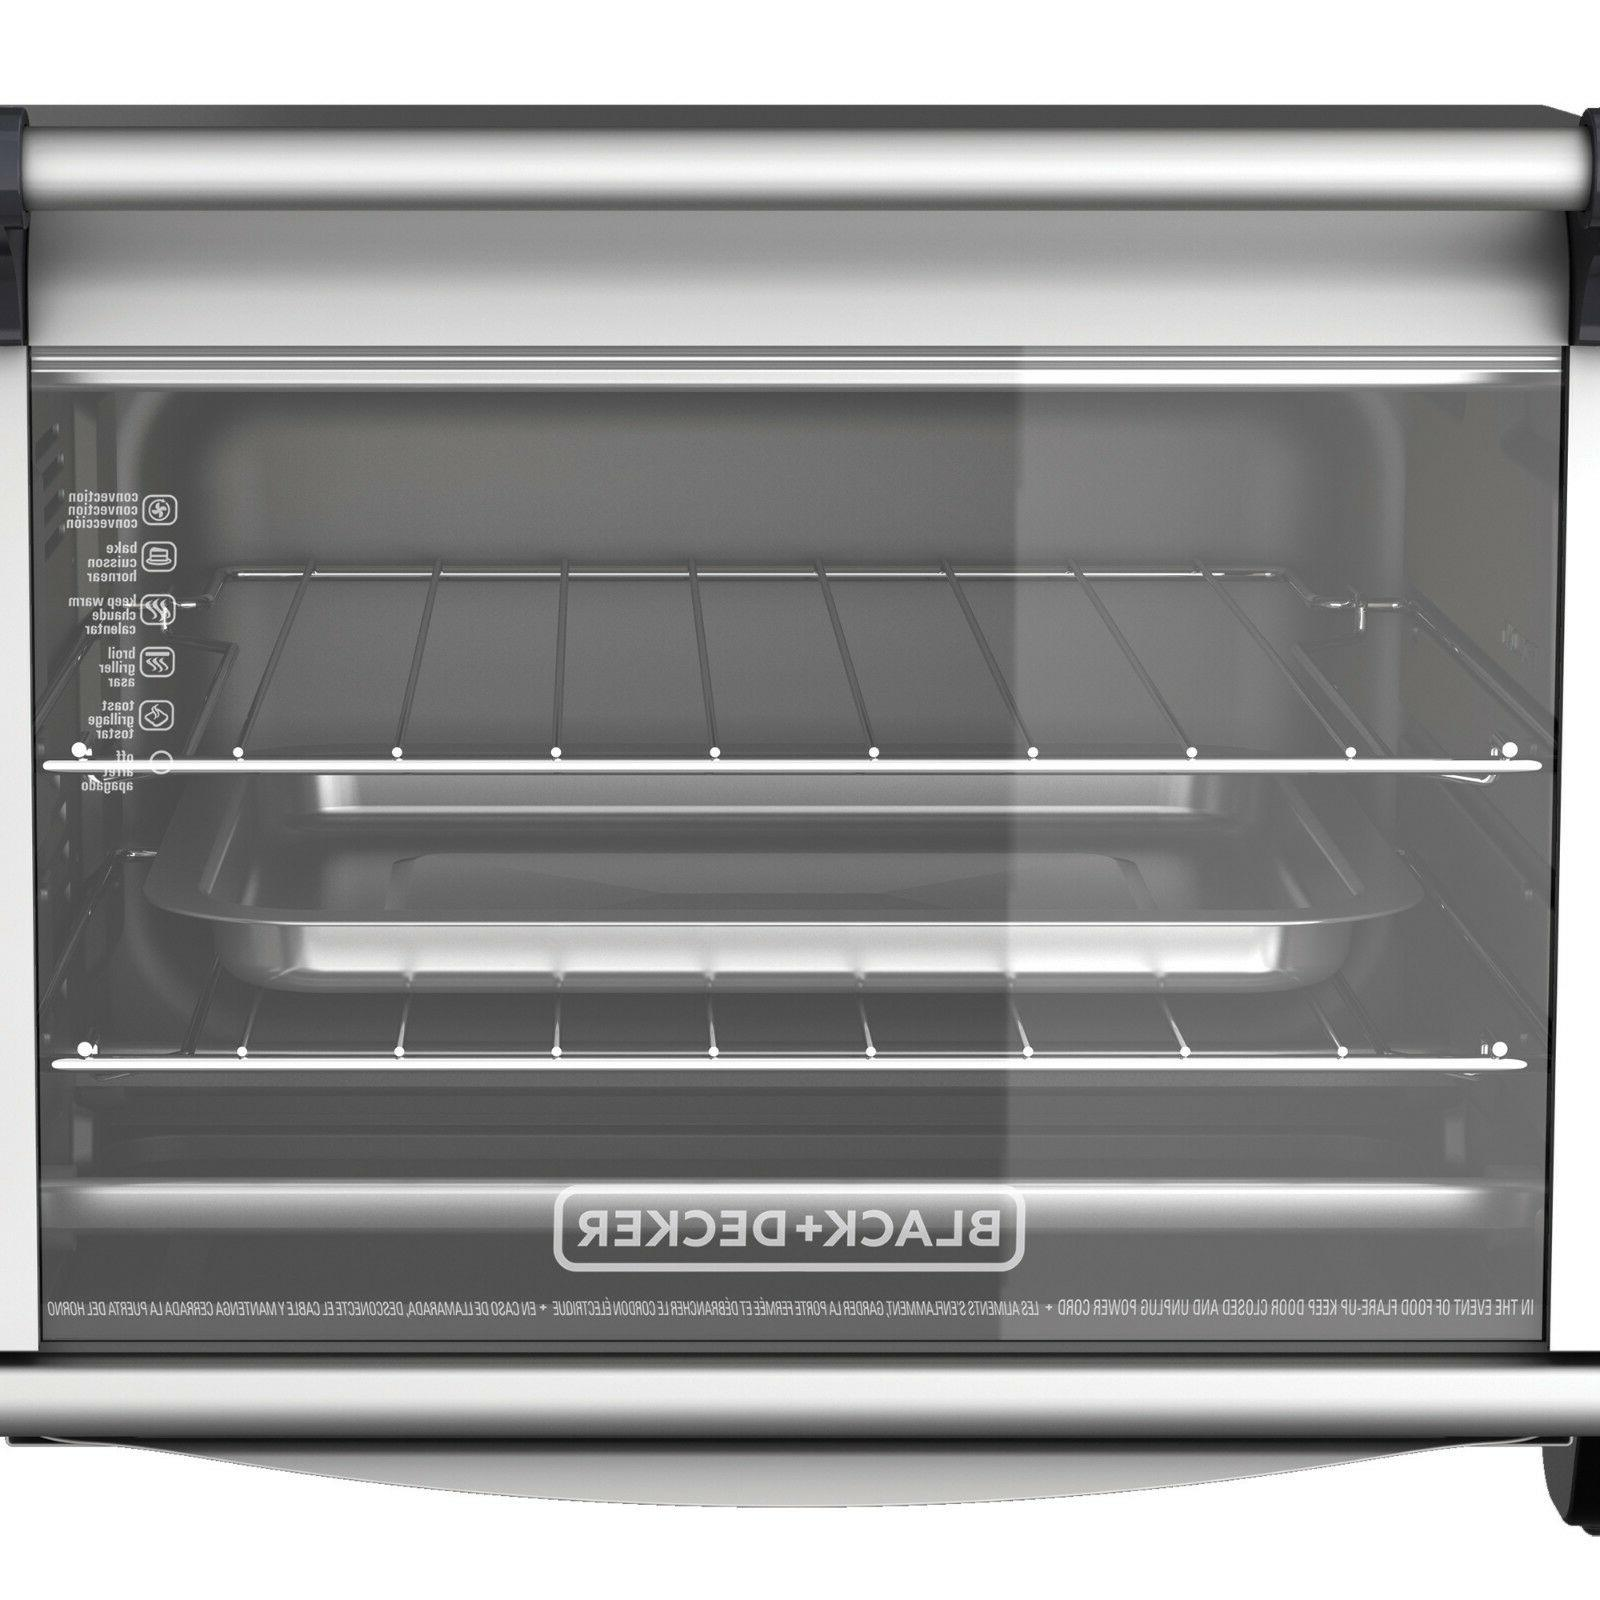 CONVECTION OVEN Toaster Stainless Broiling